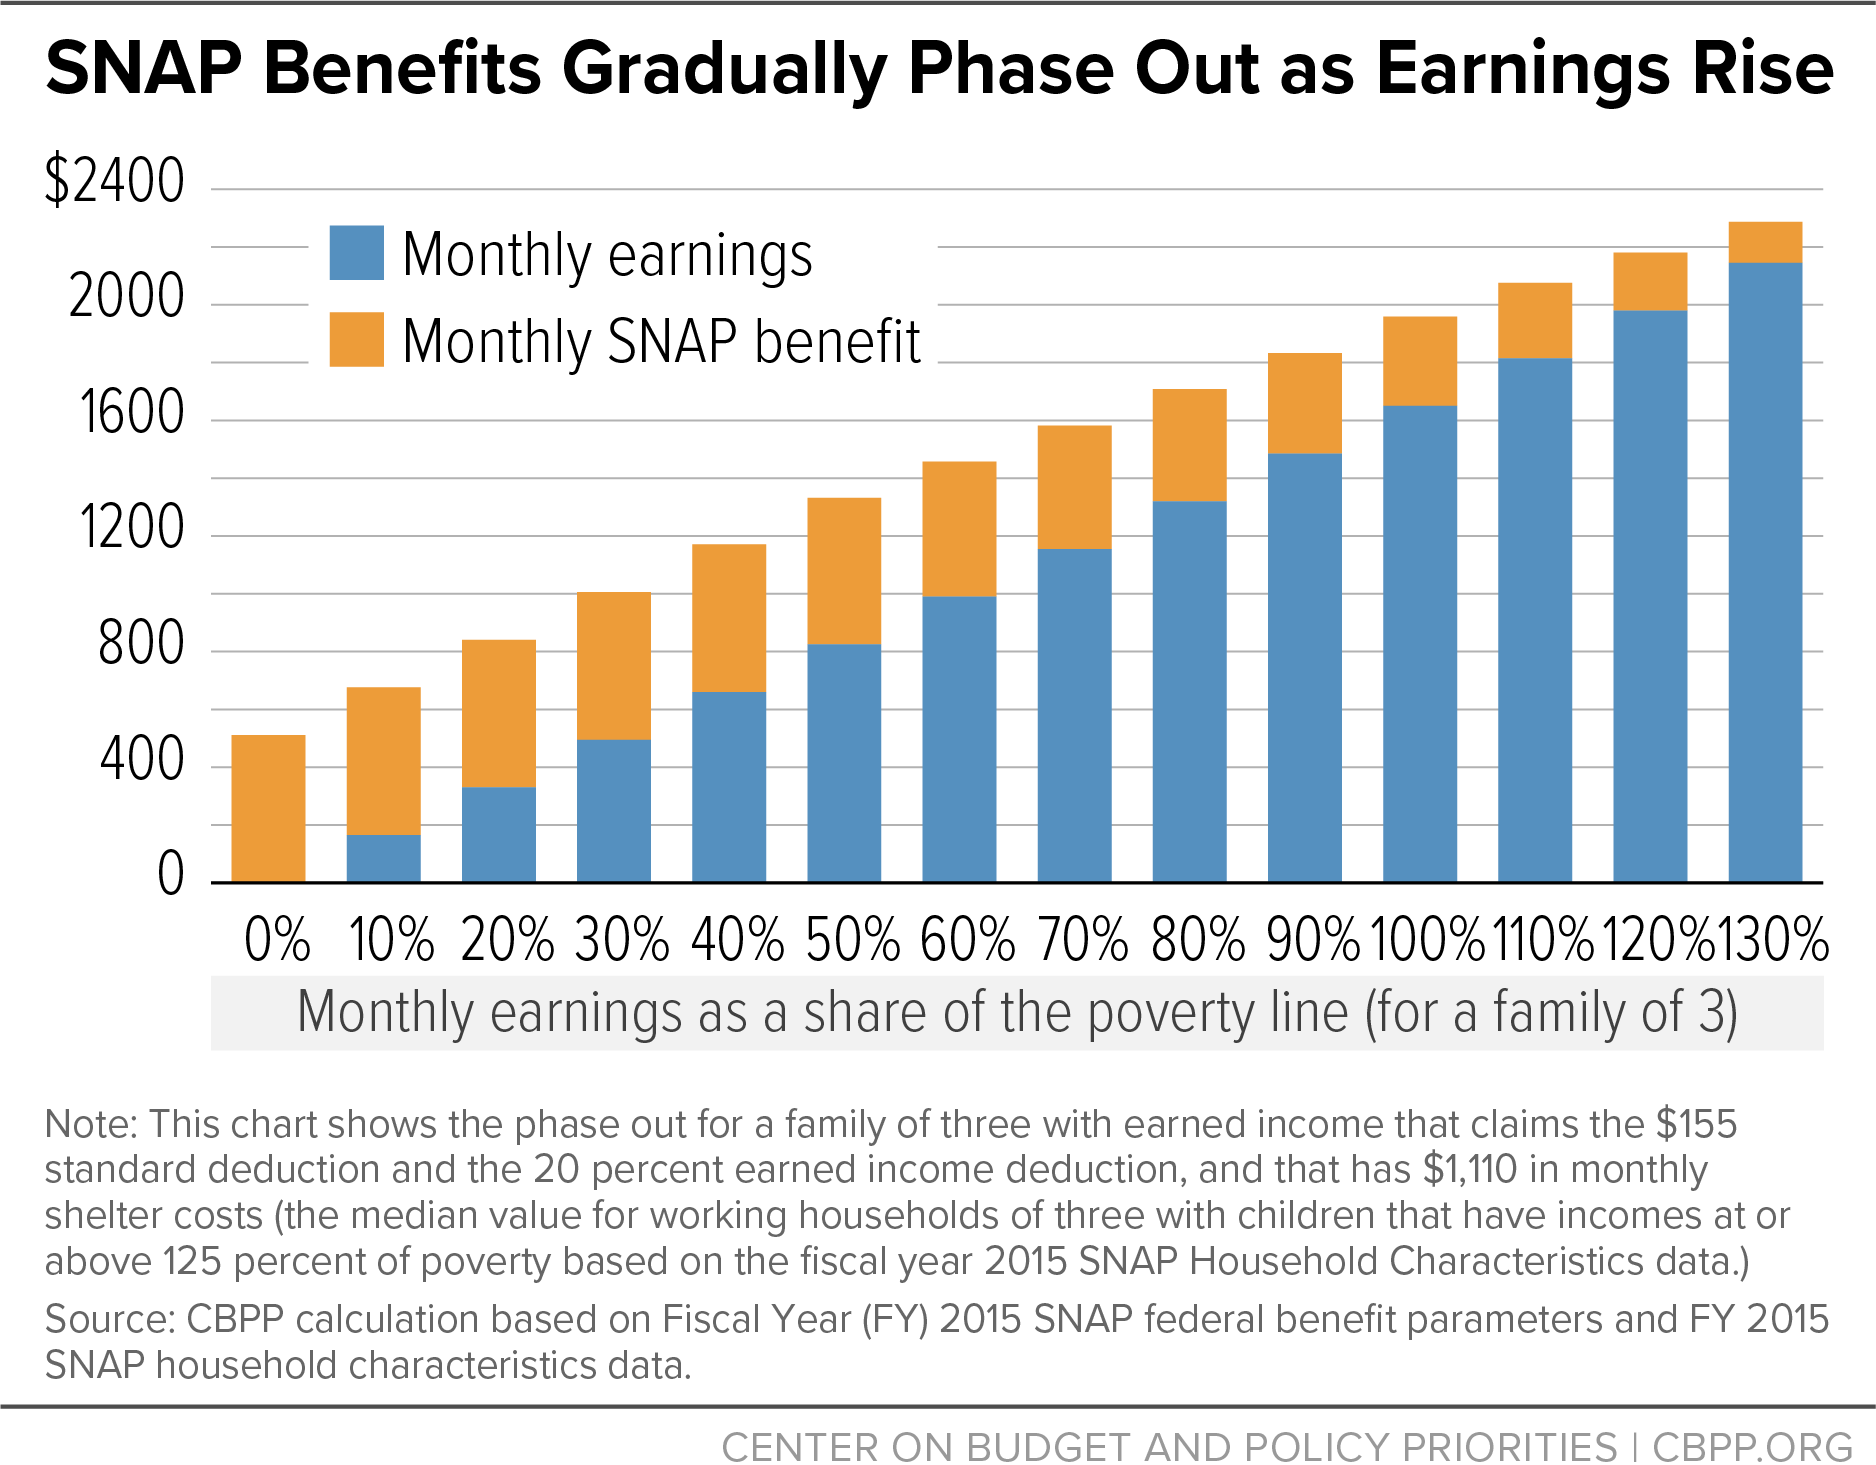 SNAP Benefits Gradually Phase Out as Earnings Rise